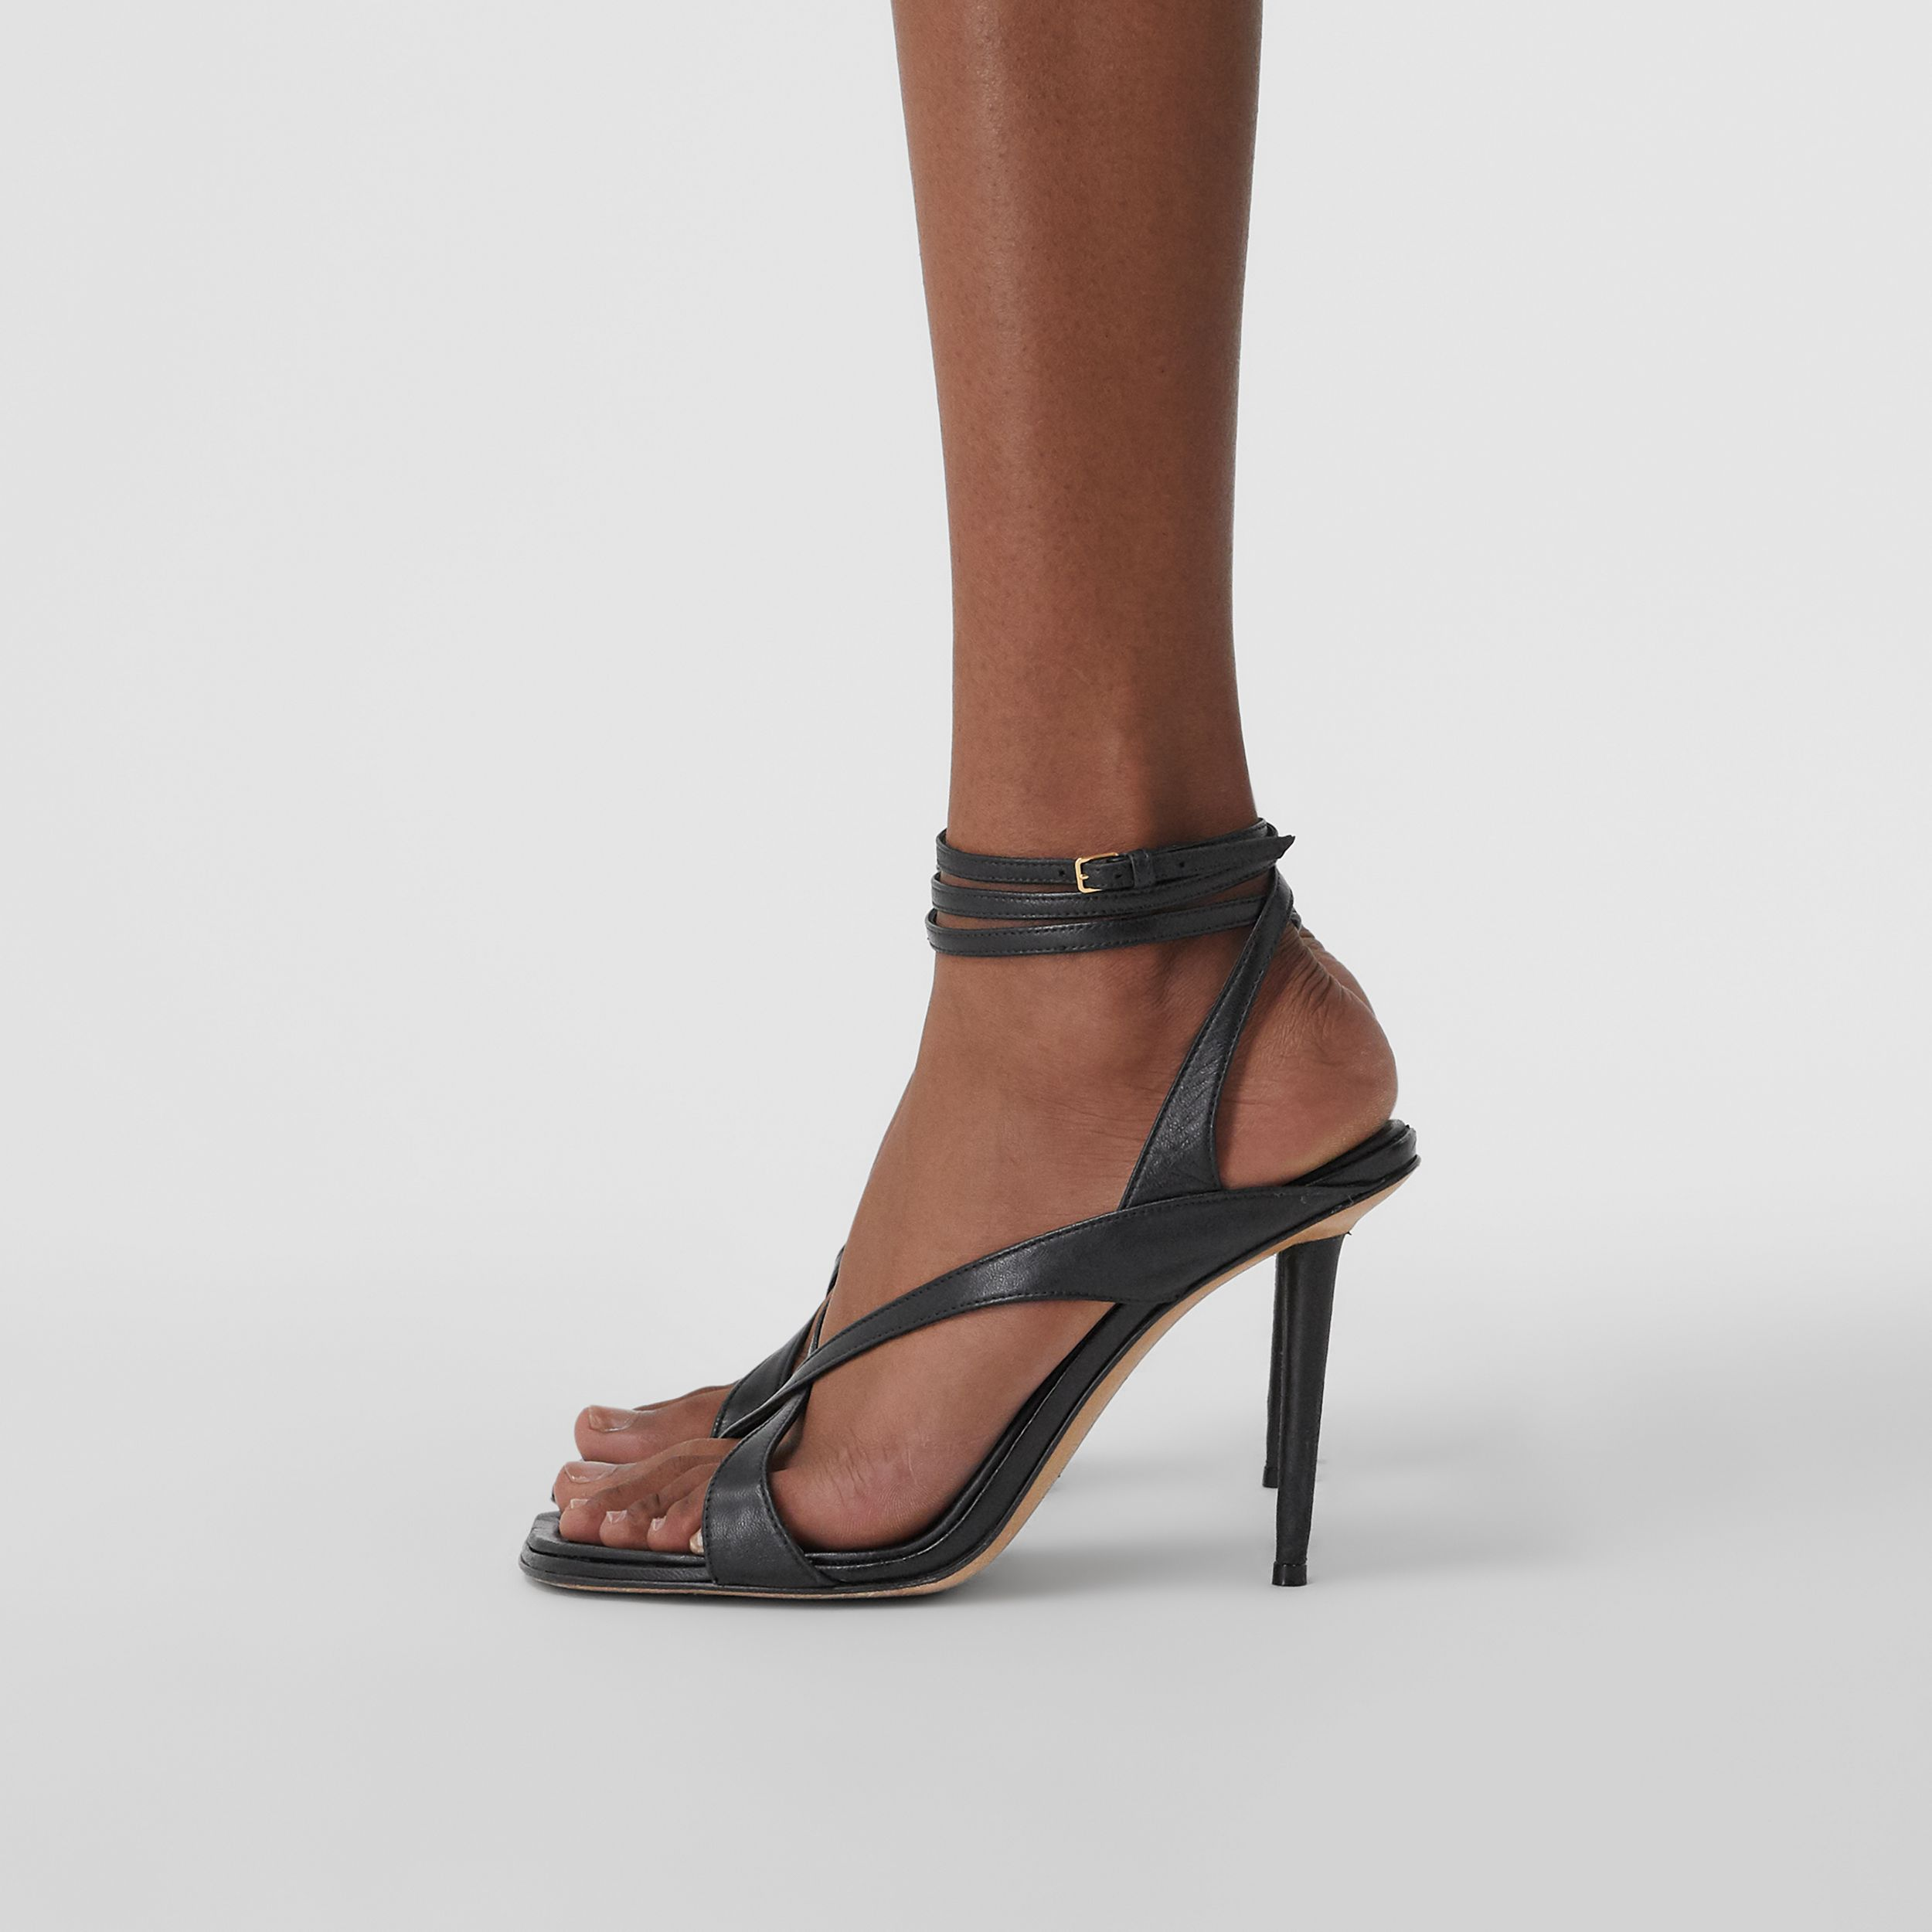 Lambskin Wraparound Stiletto-heel Sandals in Black - Women | Burberry - 2